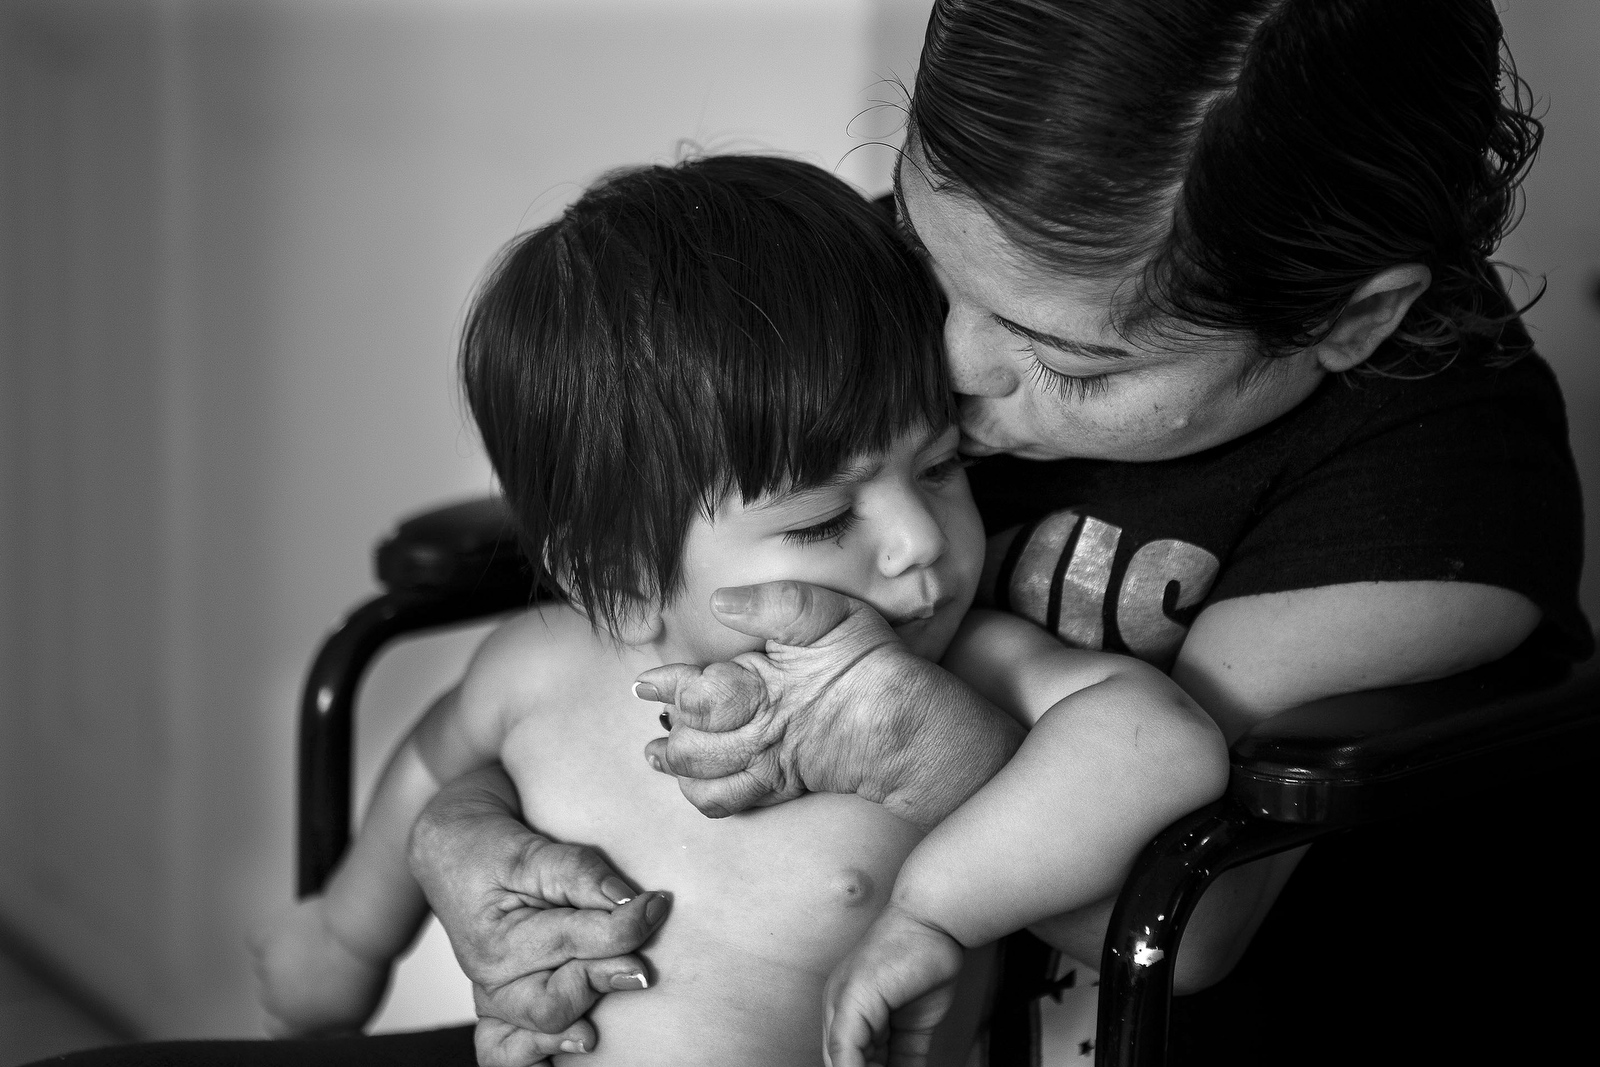 Rosa Caceres kisses her daughter Daniela Figueroa, 11 months, at their home in Lake Worth on Wednesday, November 18, 2015. Rosa has debilitating rheumatoid arthritis which forces her to use a wheelchair. Sometimes the pain in her joints is so bad that Rosa cannot even feed herself let alone hold her daughters.